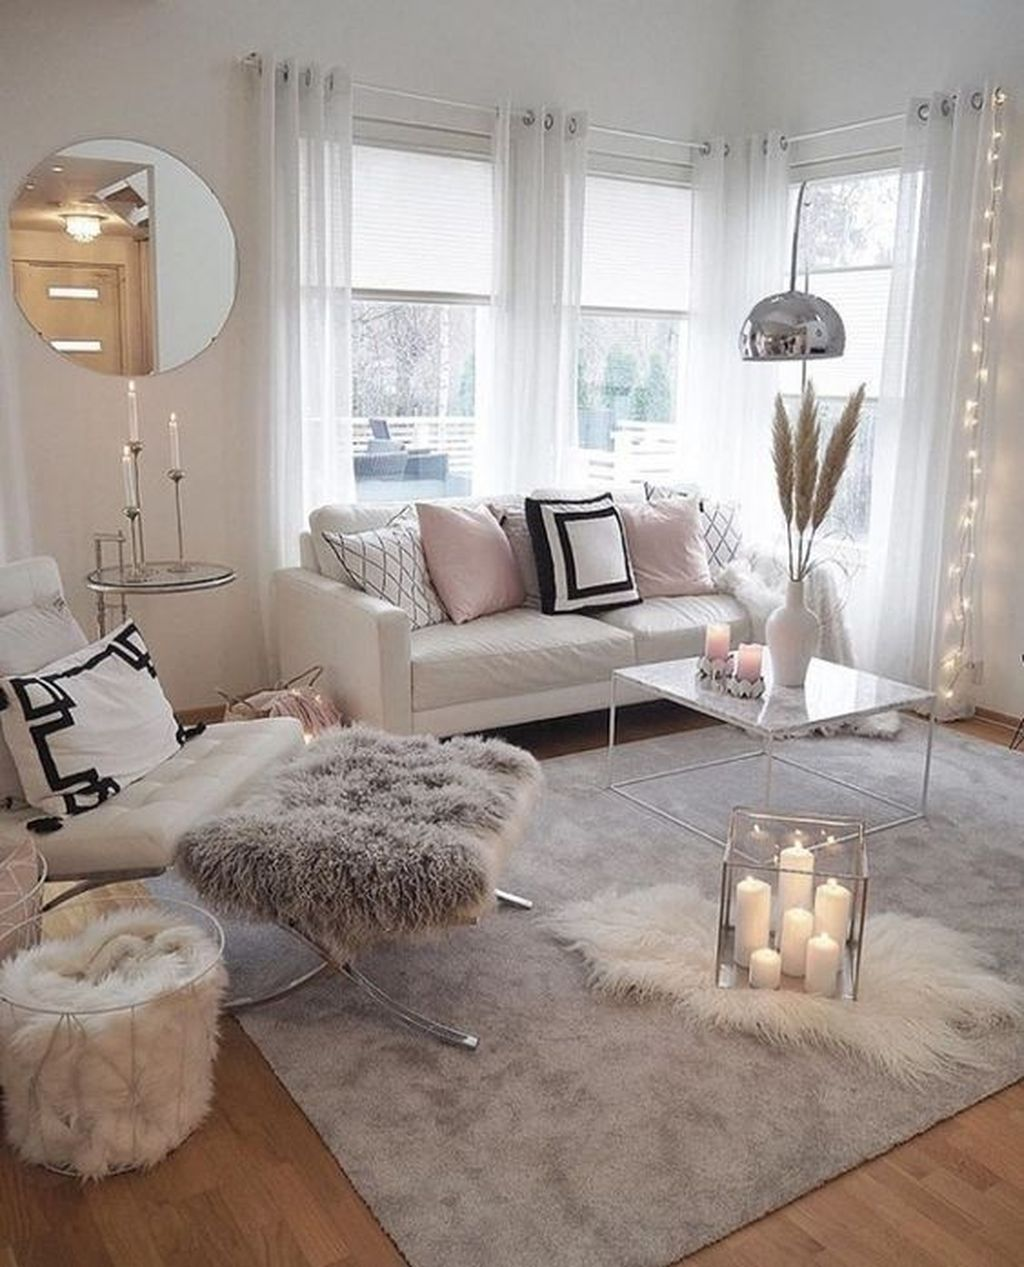 How To Manage Romantic Living Room Decor Romantic Living Room Cozy Living Room Design Glam Living Room